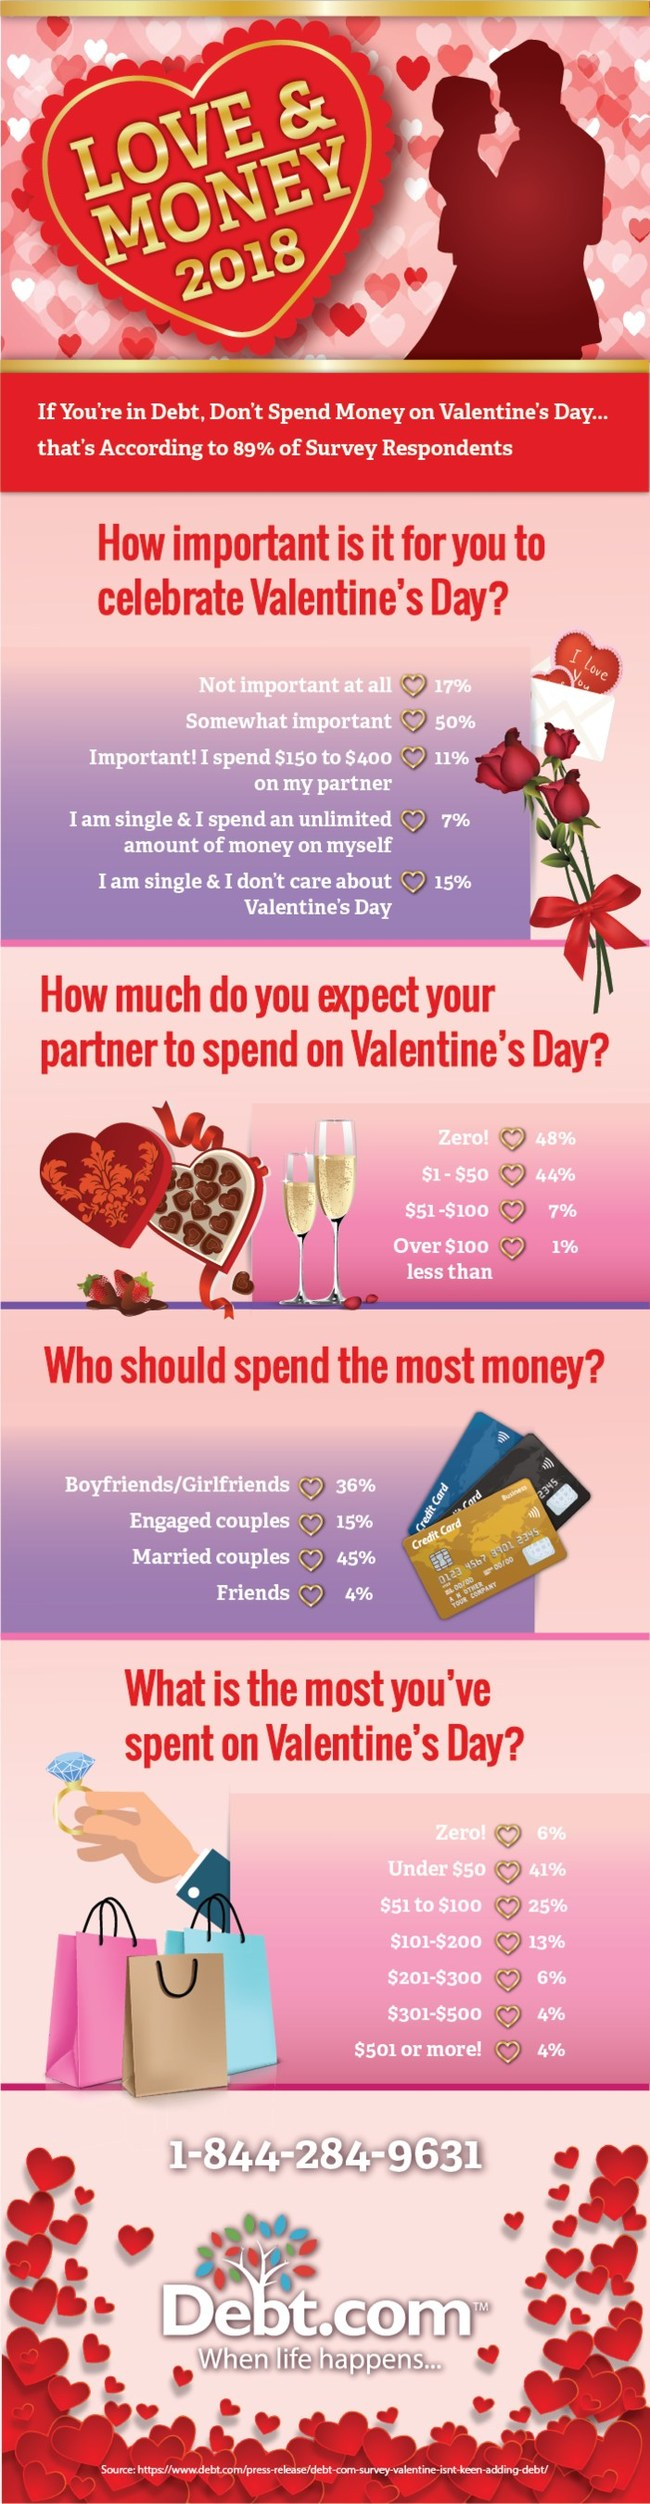 "Love & Money How Will People Spend in 2018. Survey Shows Those who are Dealing with Debt Plan to be Frugal. ""We tend to over-gift in the desire to make our loved ones happy,"" explains Howard Dvorkin, Chairman of Debt.com. Everyone wants to make sure their loved ones know how much they care. Overspending can easily be avoided at holidays like Valentine's Day with a simple conversation. Talk about what you expect as a couple, so you can both be on the same page."